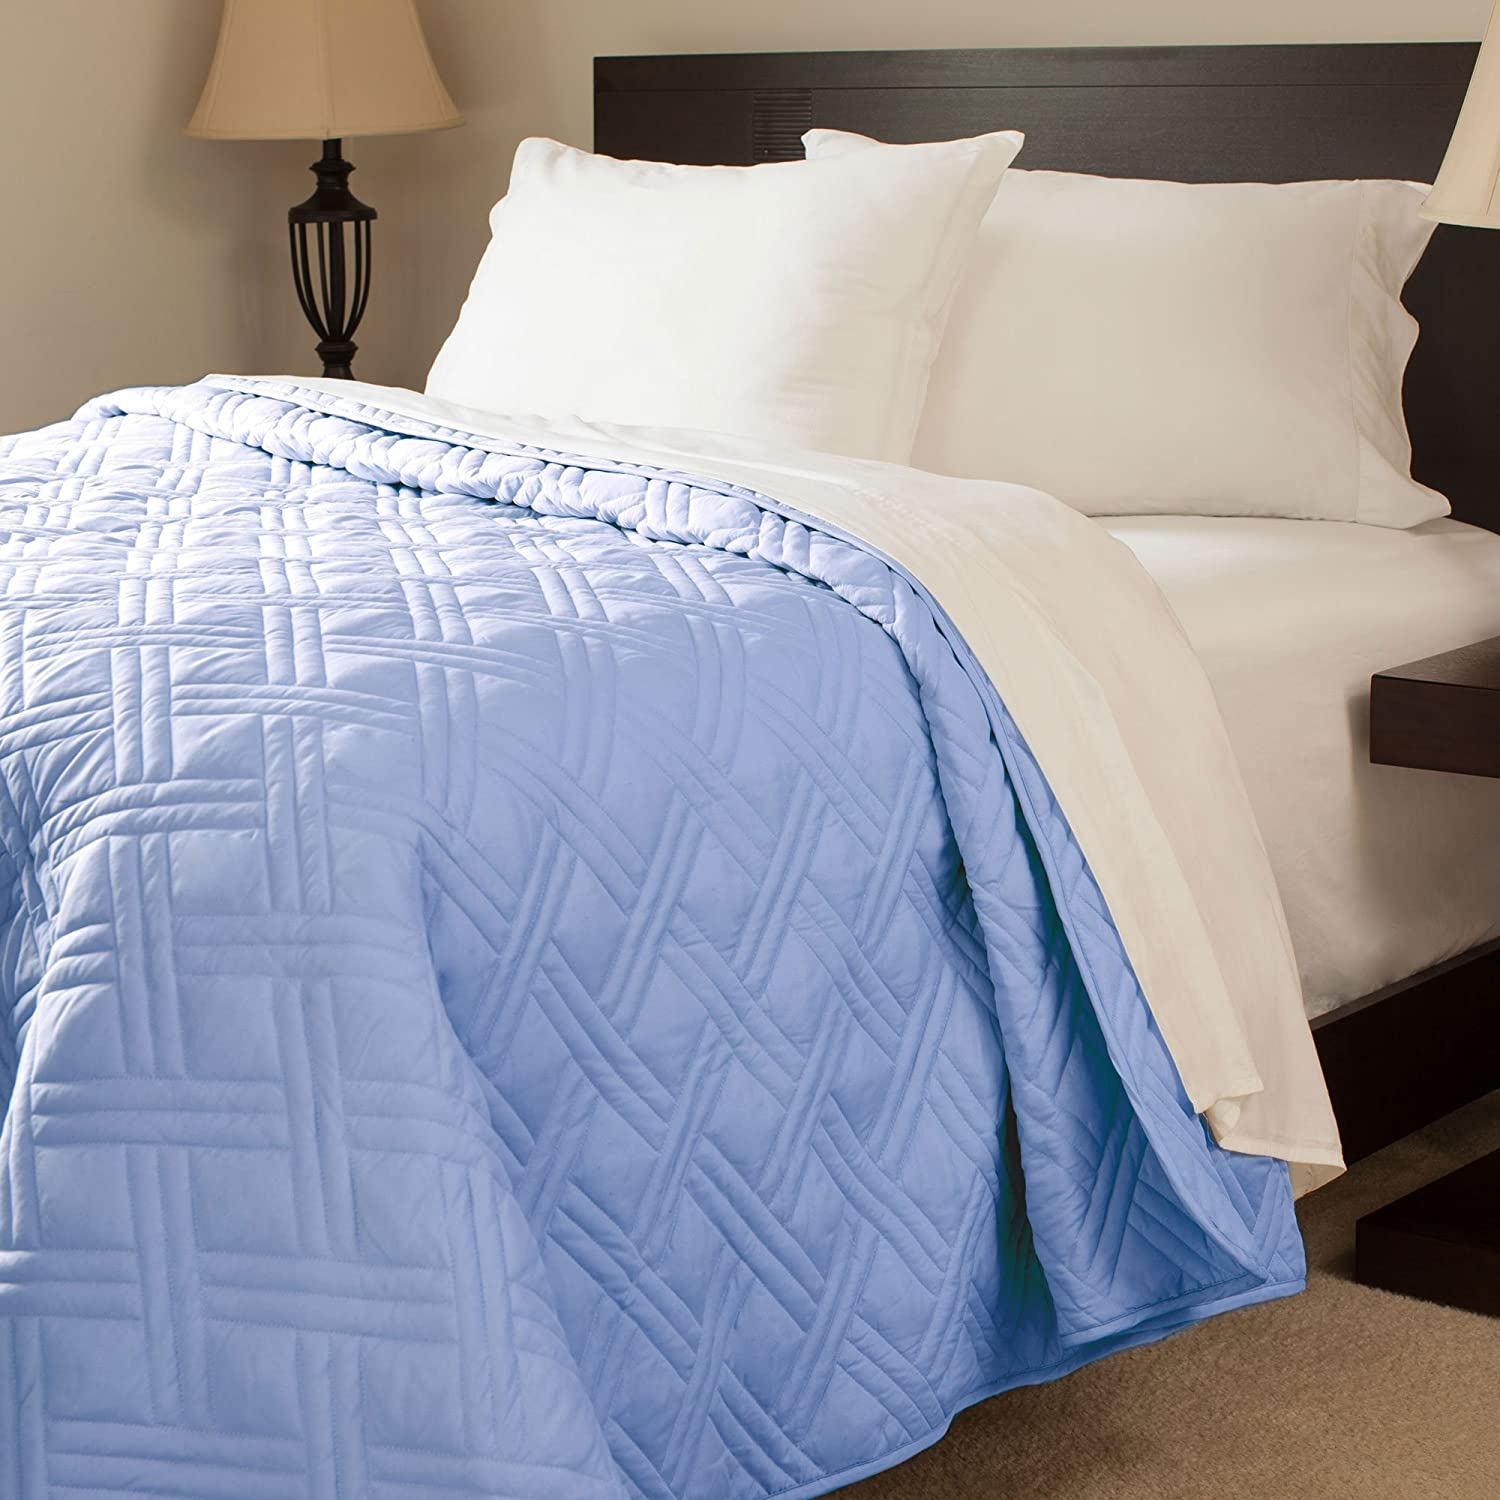 Great Amazon.com: Lavish Home Solid Color Bed Quilt, Full/Queen, Blue: Home U0026  Kitchen Awesome Ideas